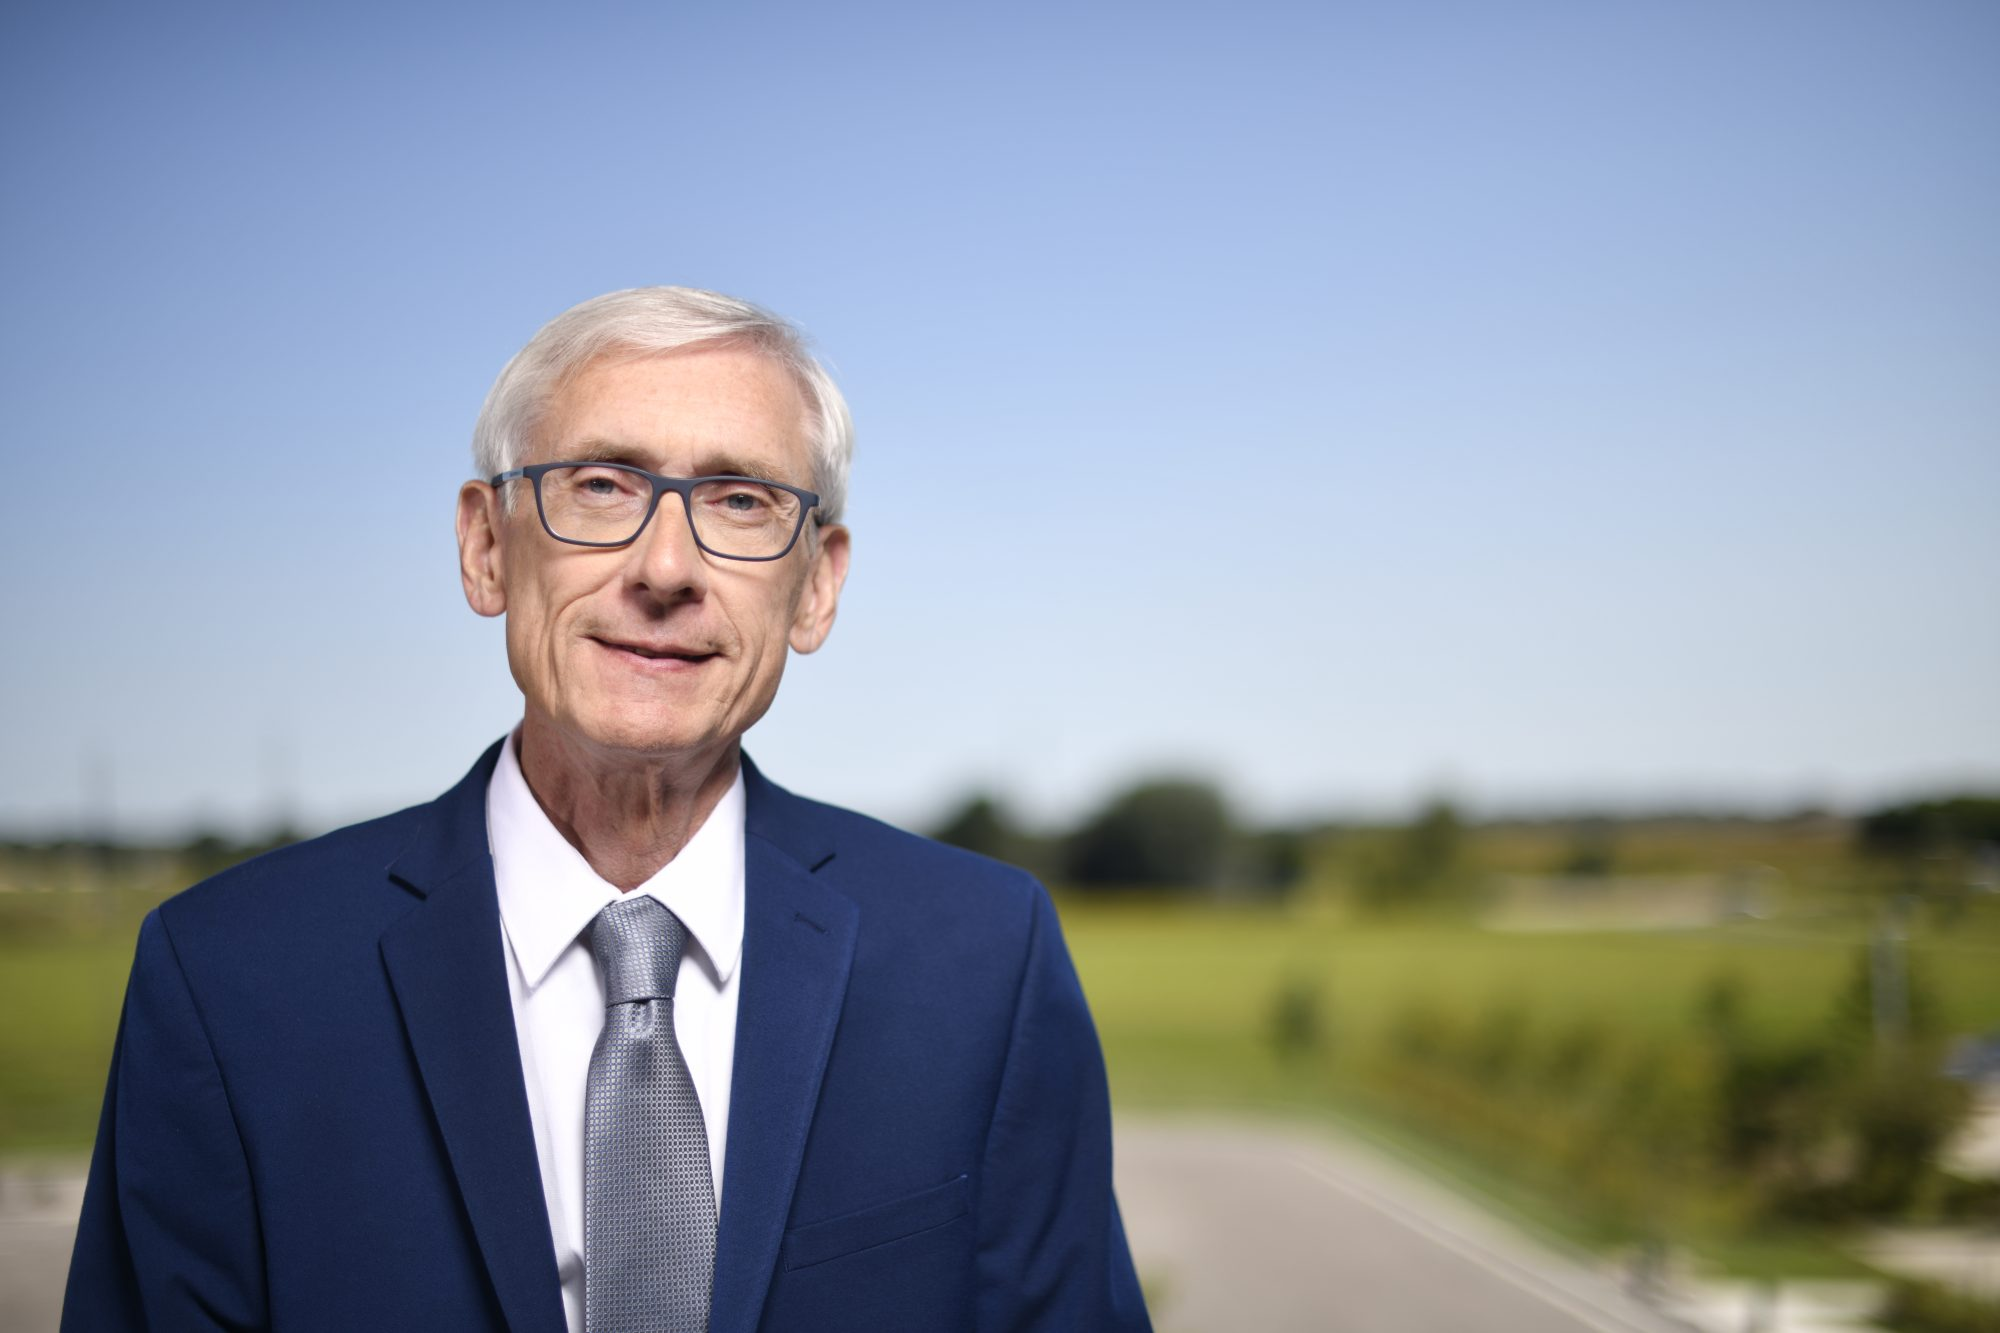 Gov. Evers Signs Executive Order Declaring Indigenous Peoples' Day in Wisconsin